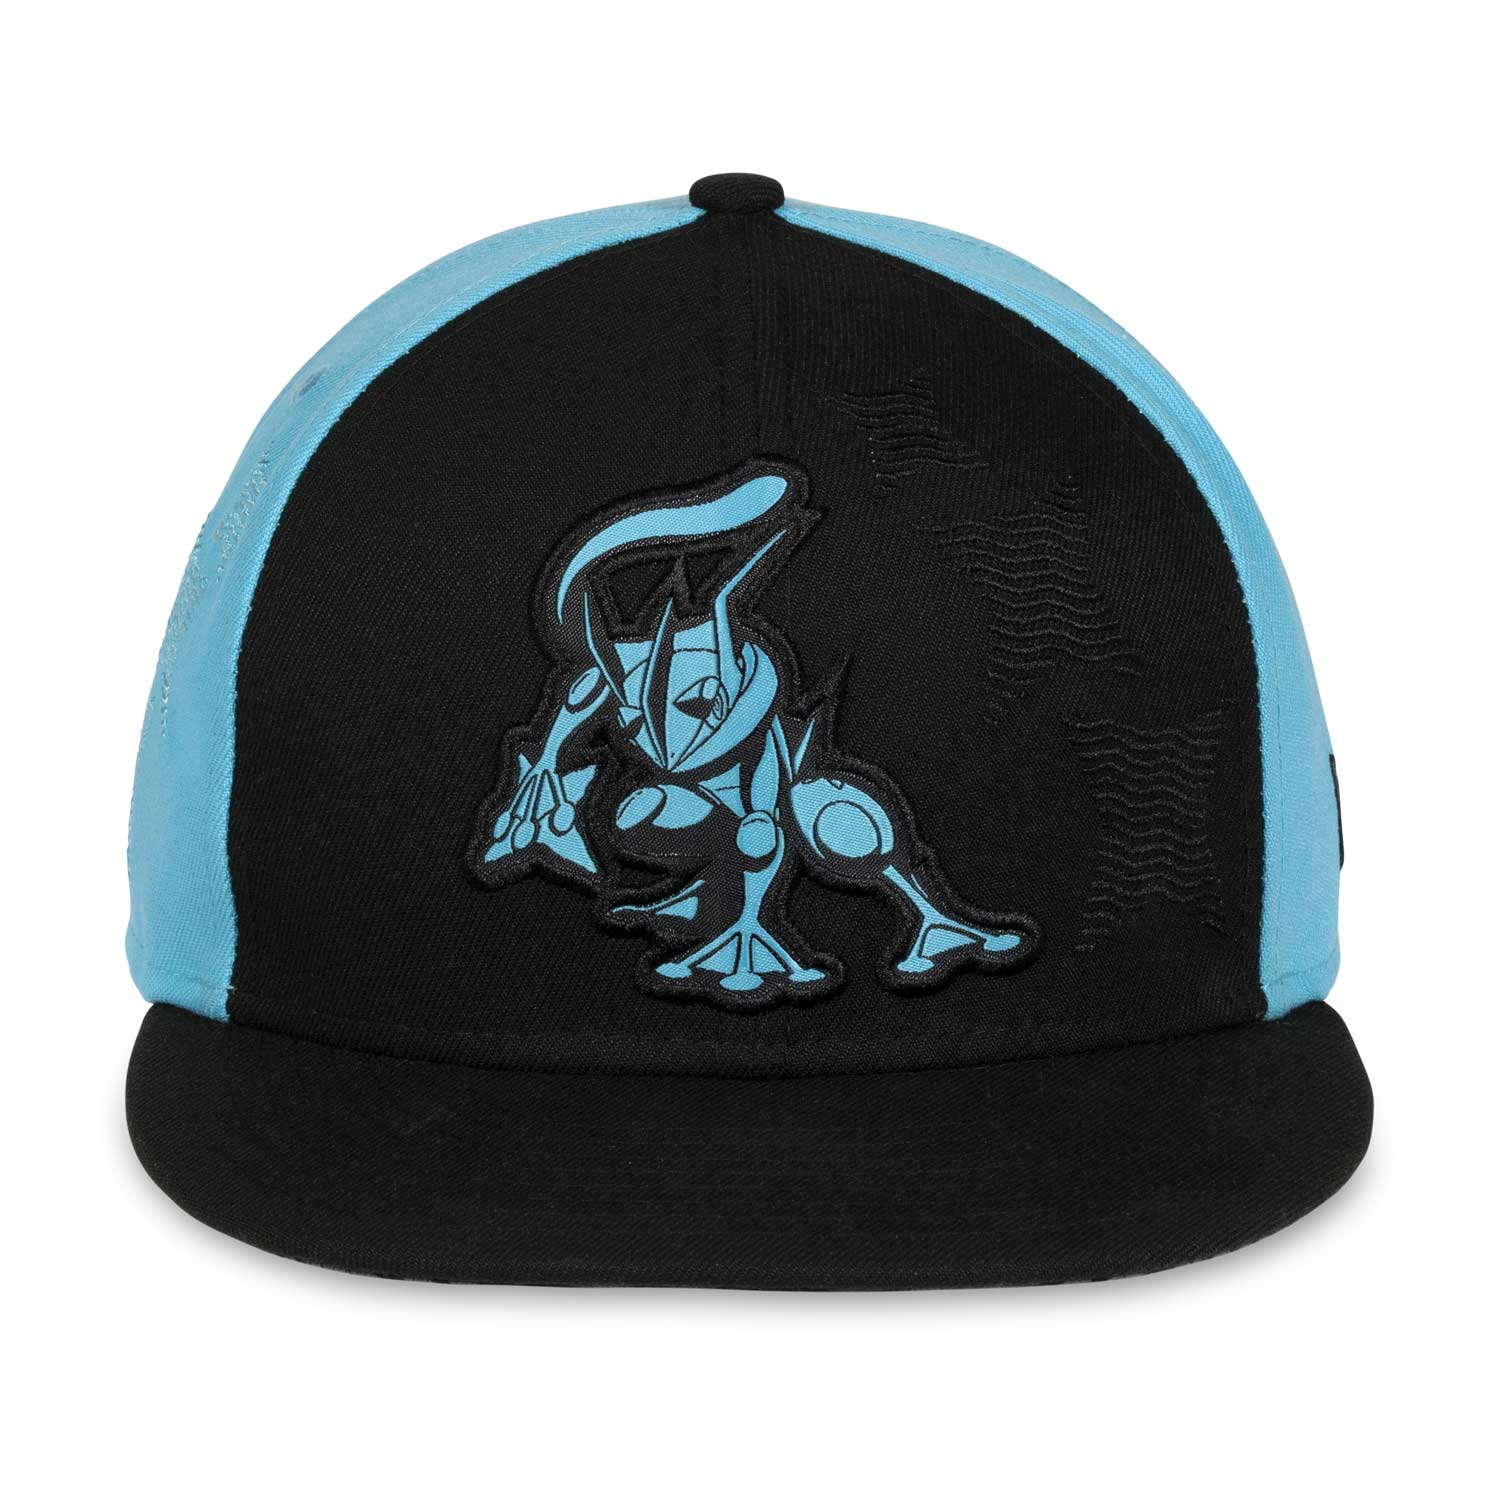 f3e23688 Image for Greninja Stealth 9FIFTY Baseball Cap by New Era (One Size-Adult)